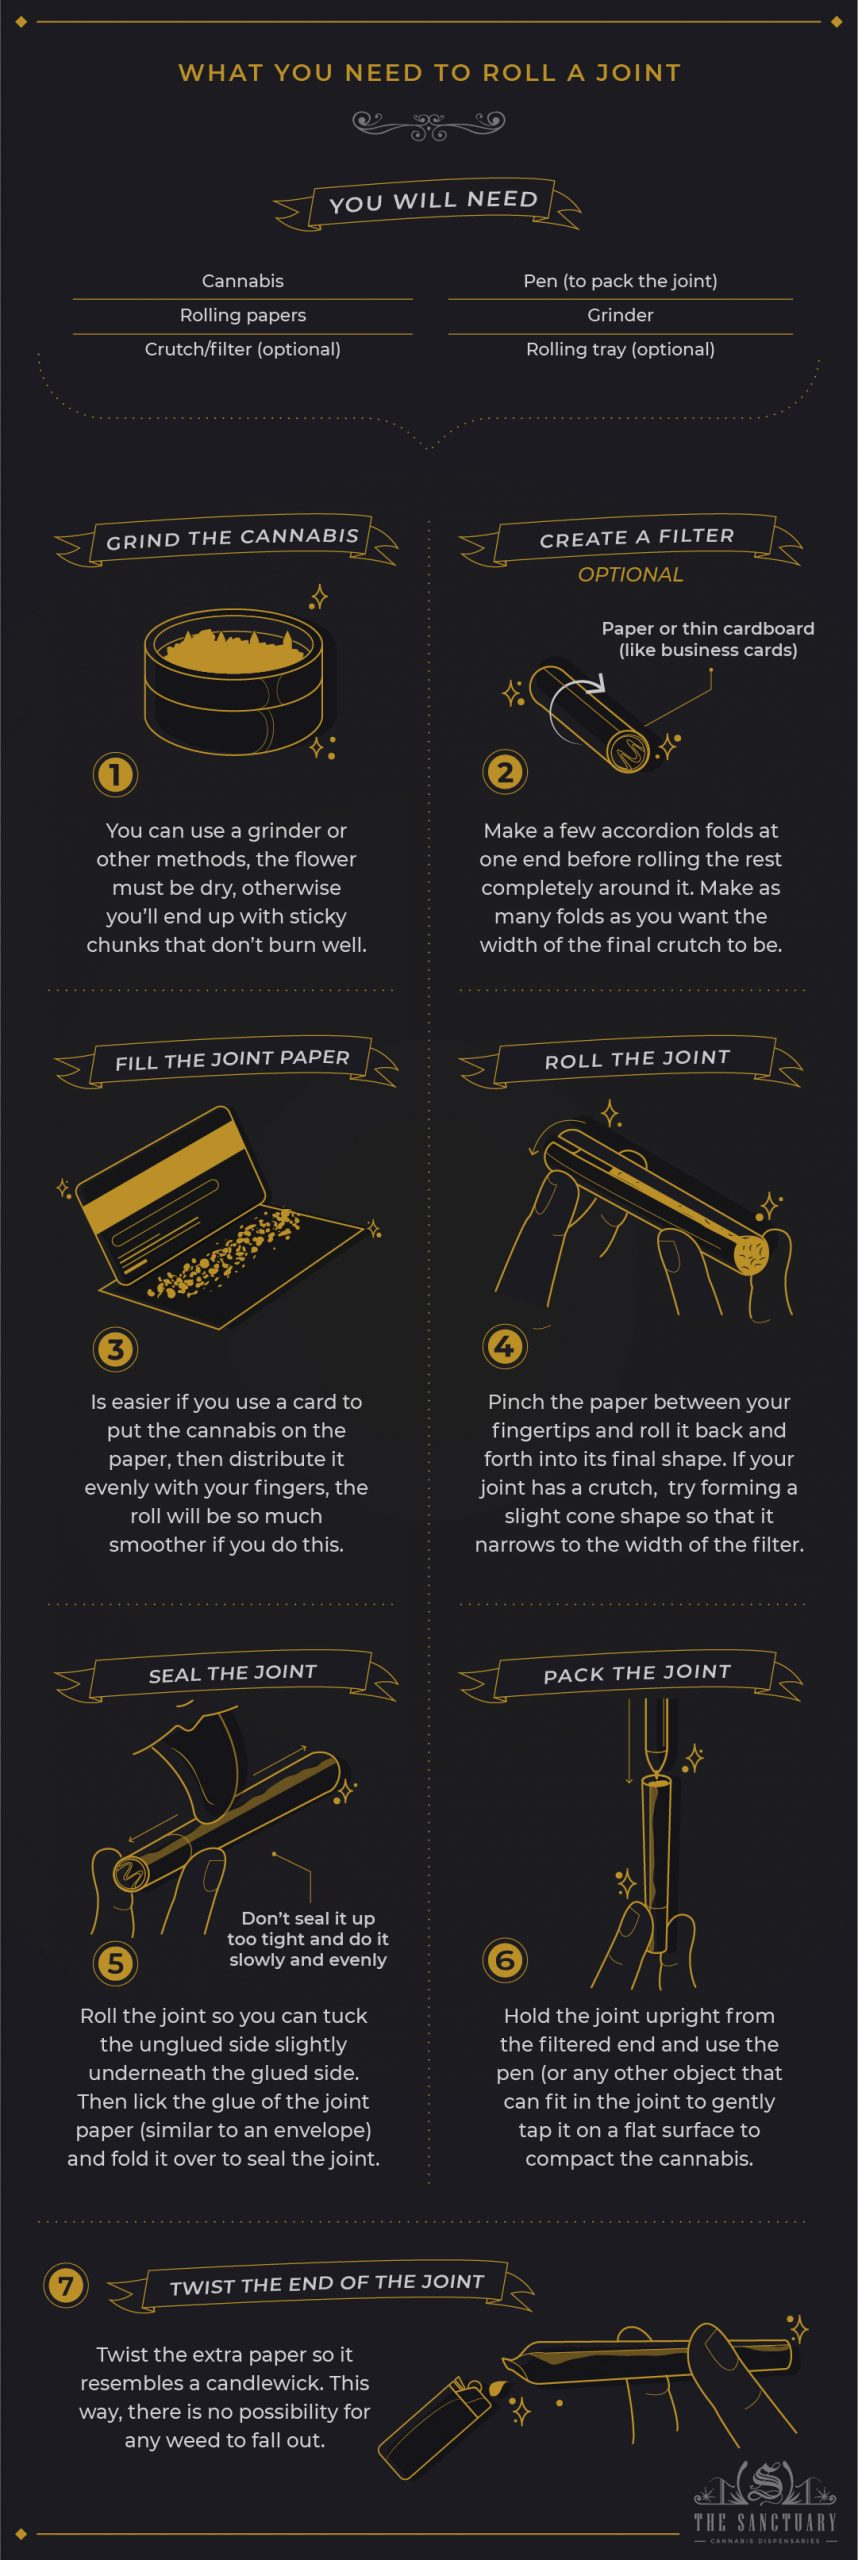 What you need to roll a joint